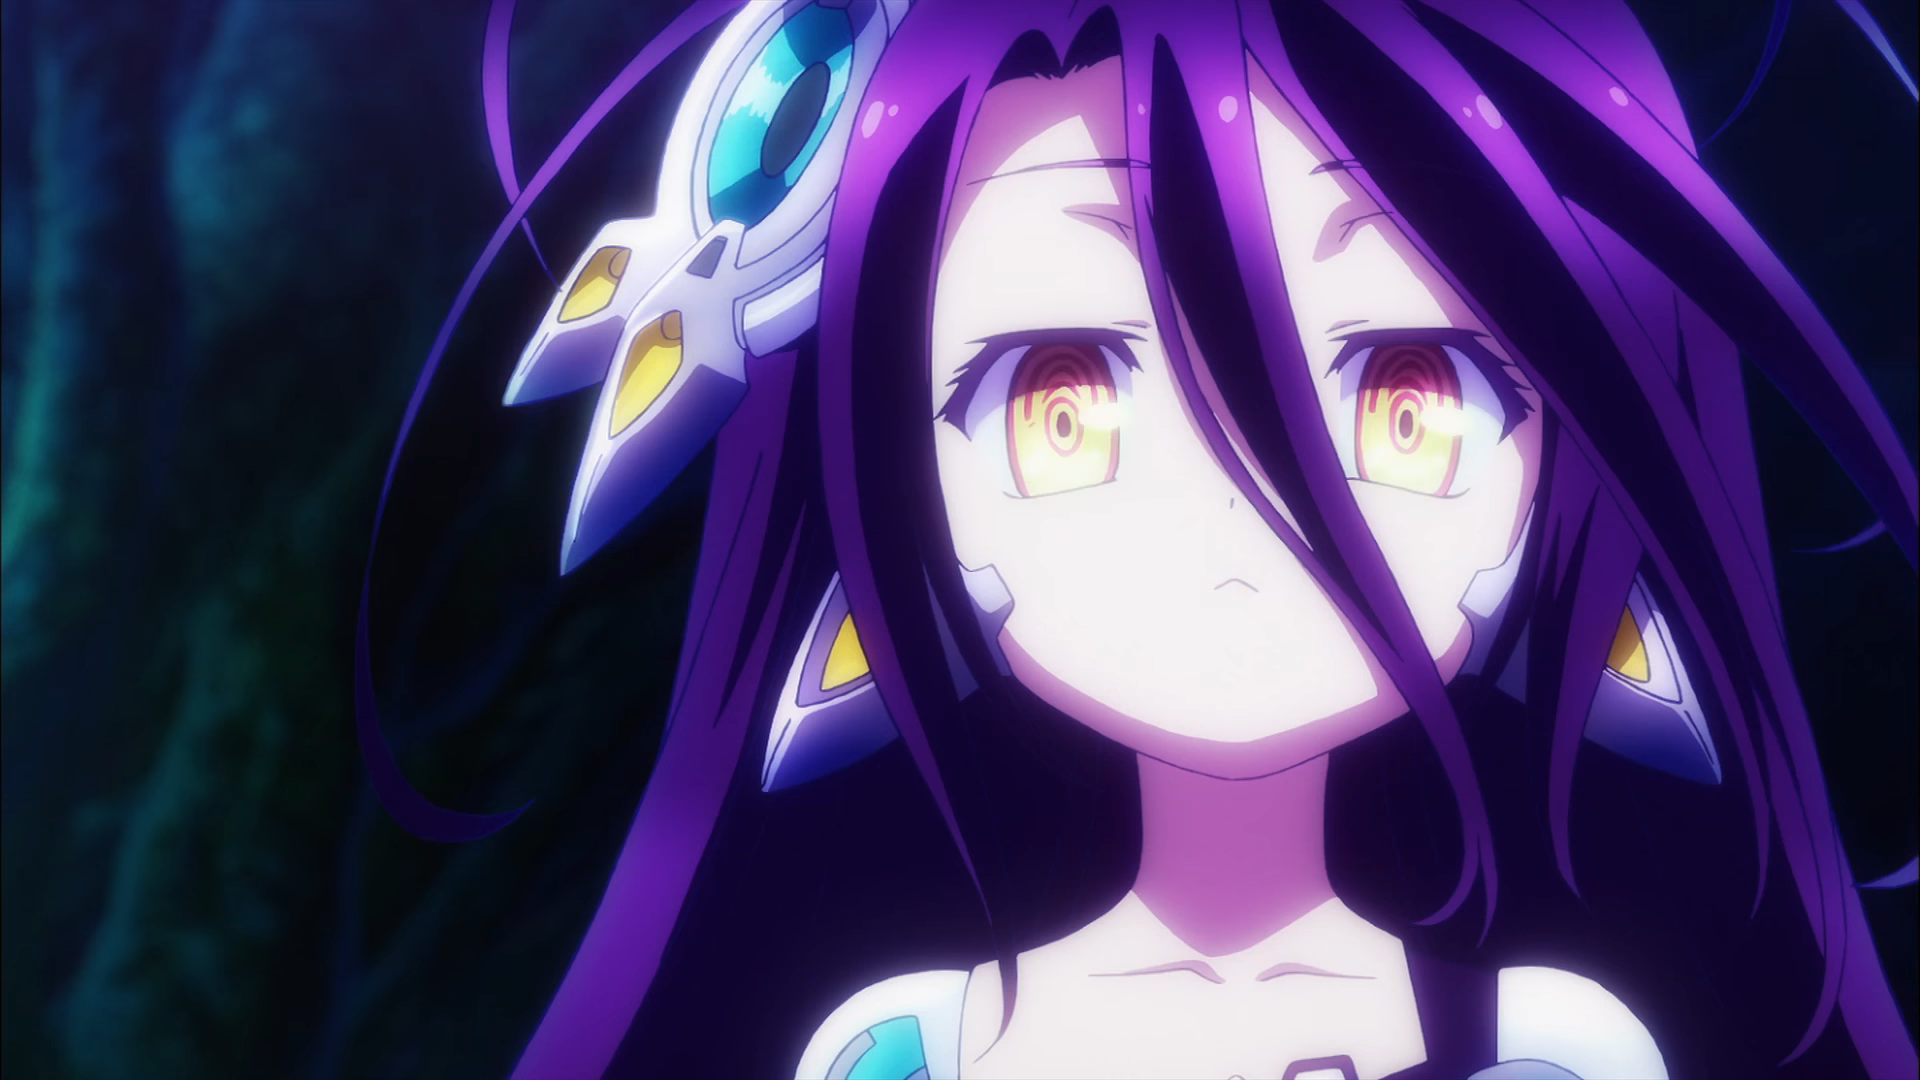 Mvm Acquires No Game No Life Zero For Uk Release Anime Uk News